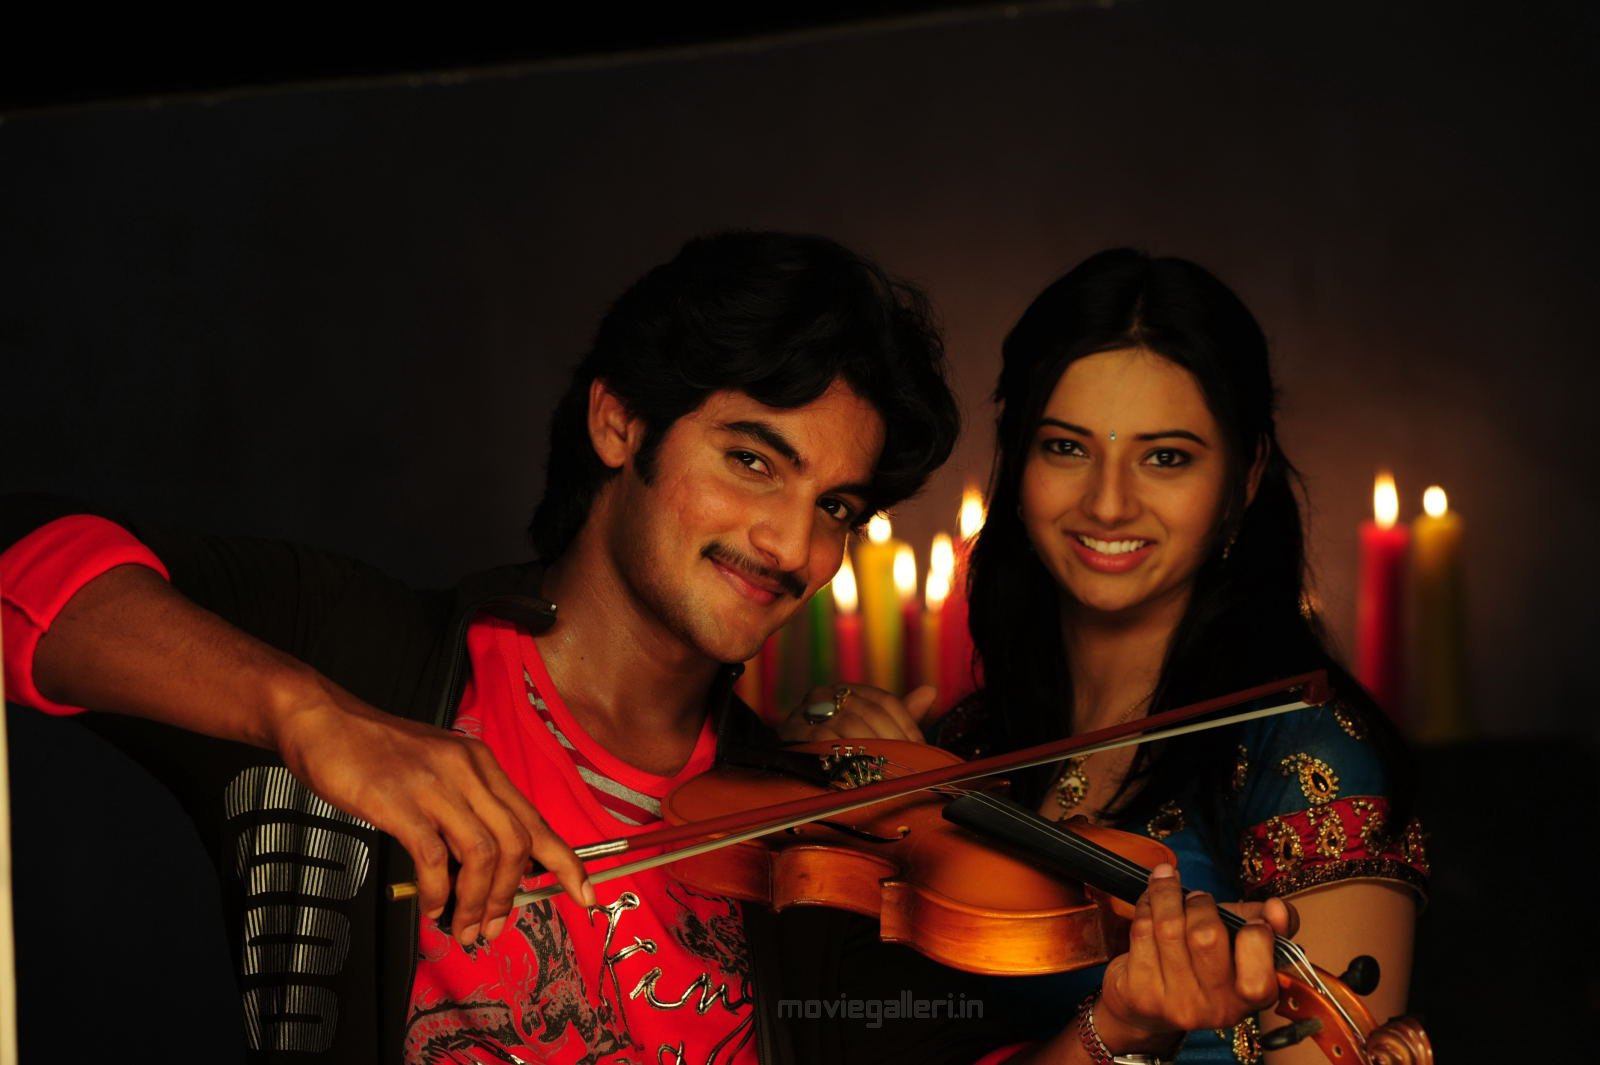 http://4.bp.blogspot.com/_6Vr9b9OoZno/TNzdBgyNKaI/AAAAAAAADmQ/LWiKKTp-3aY/s1600/prema_kavali_movie_stills_wallpapers_02.JPG